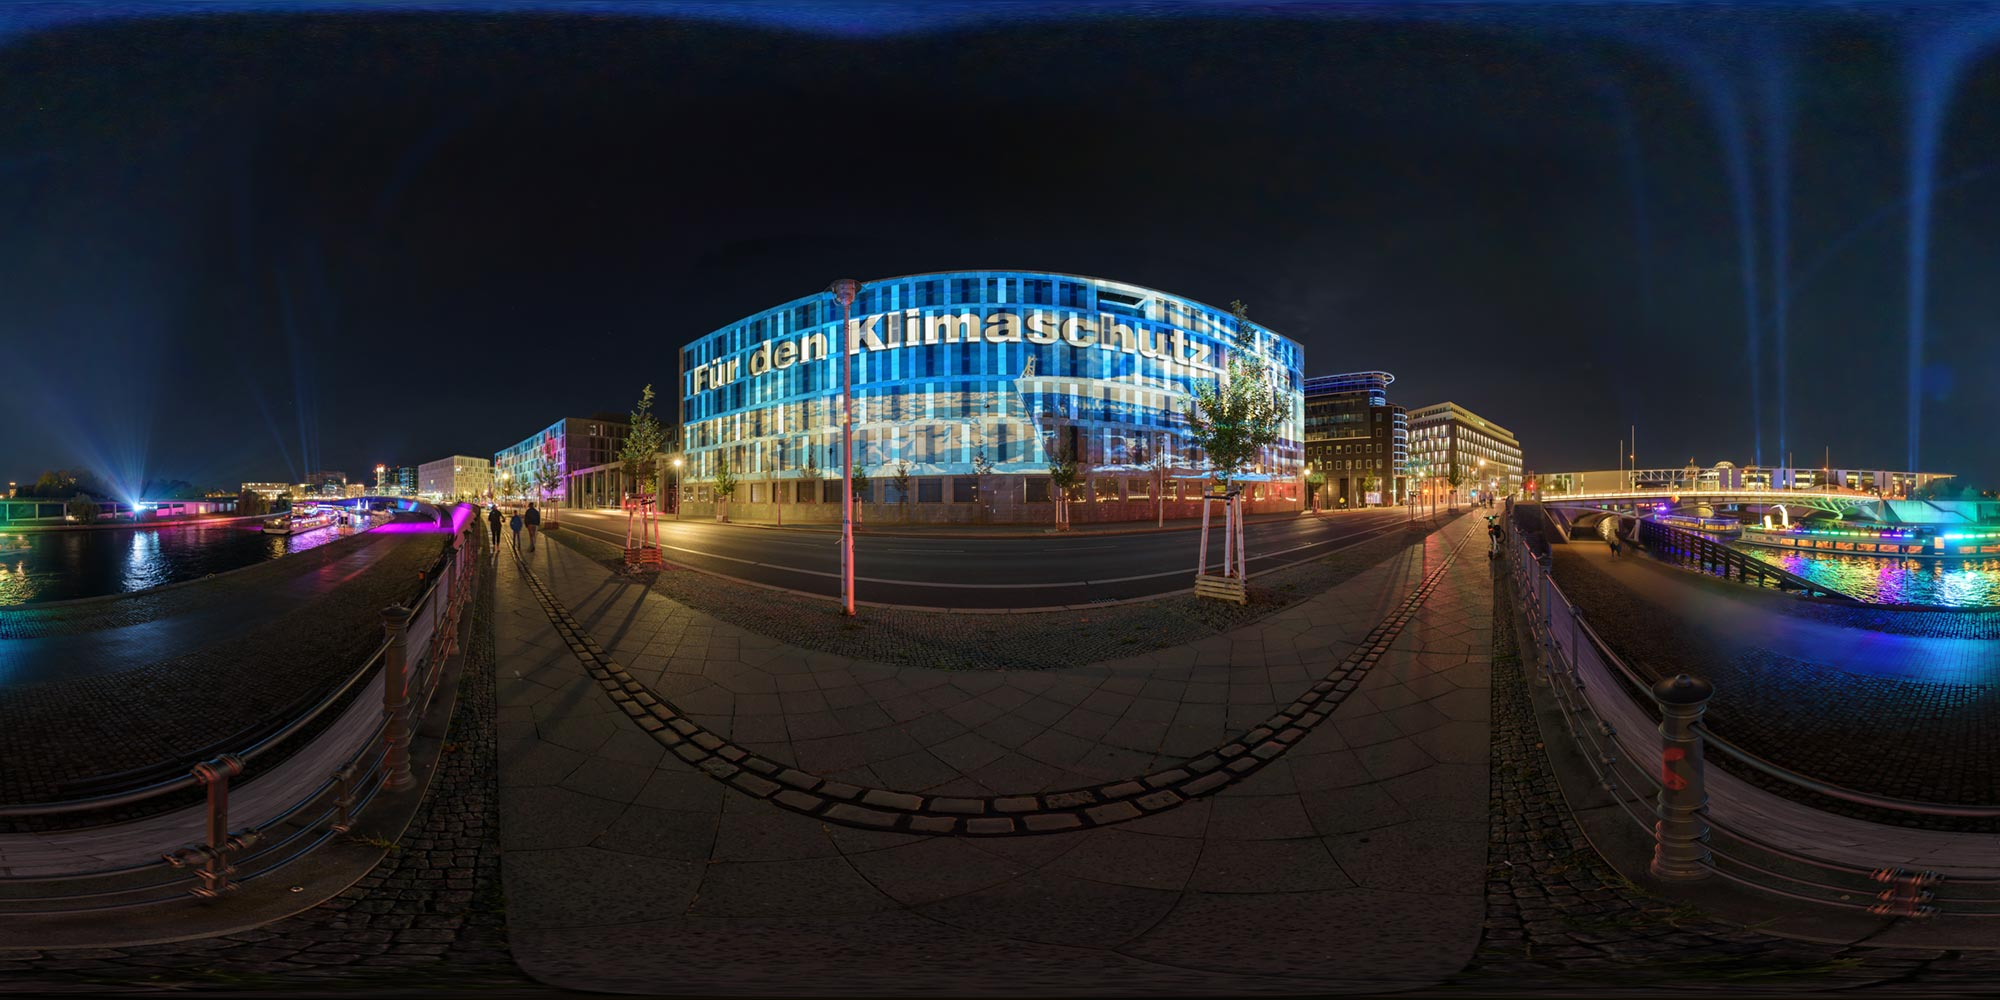 Panorama Berlin Festival of Lights - FOL 2019 Bildungsministerium